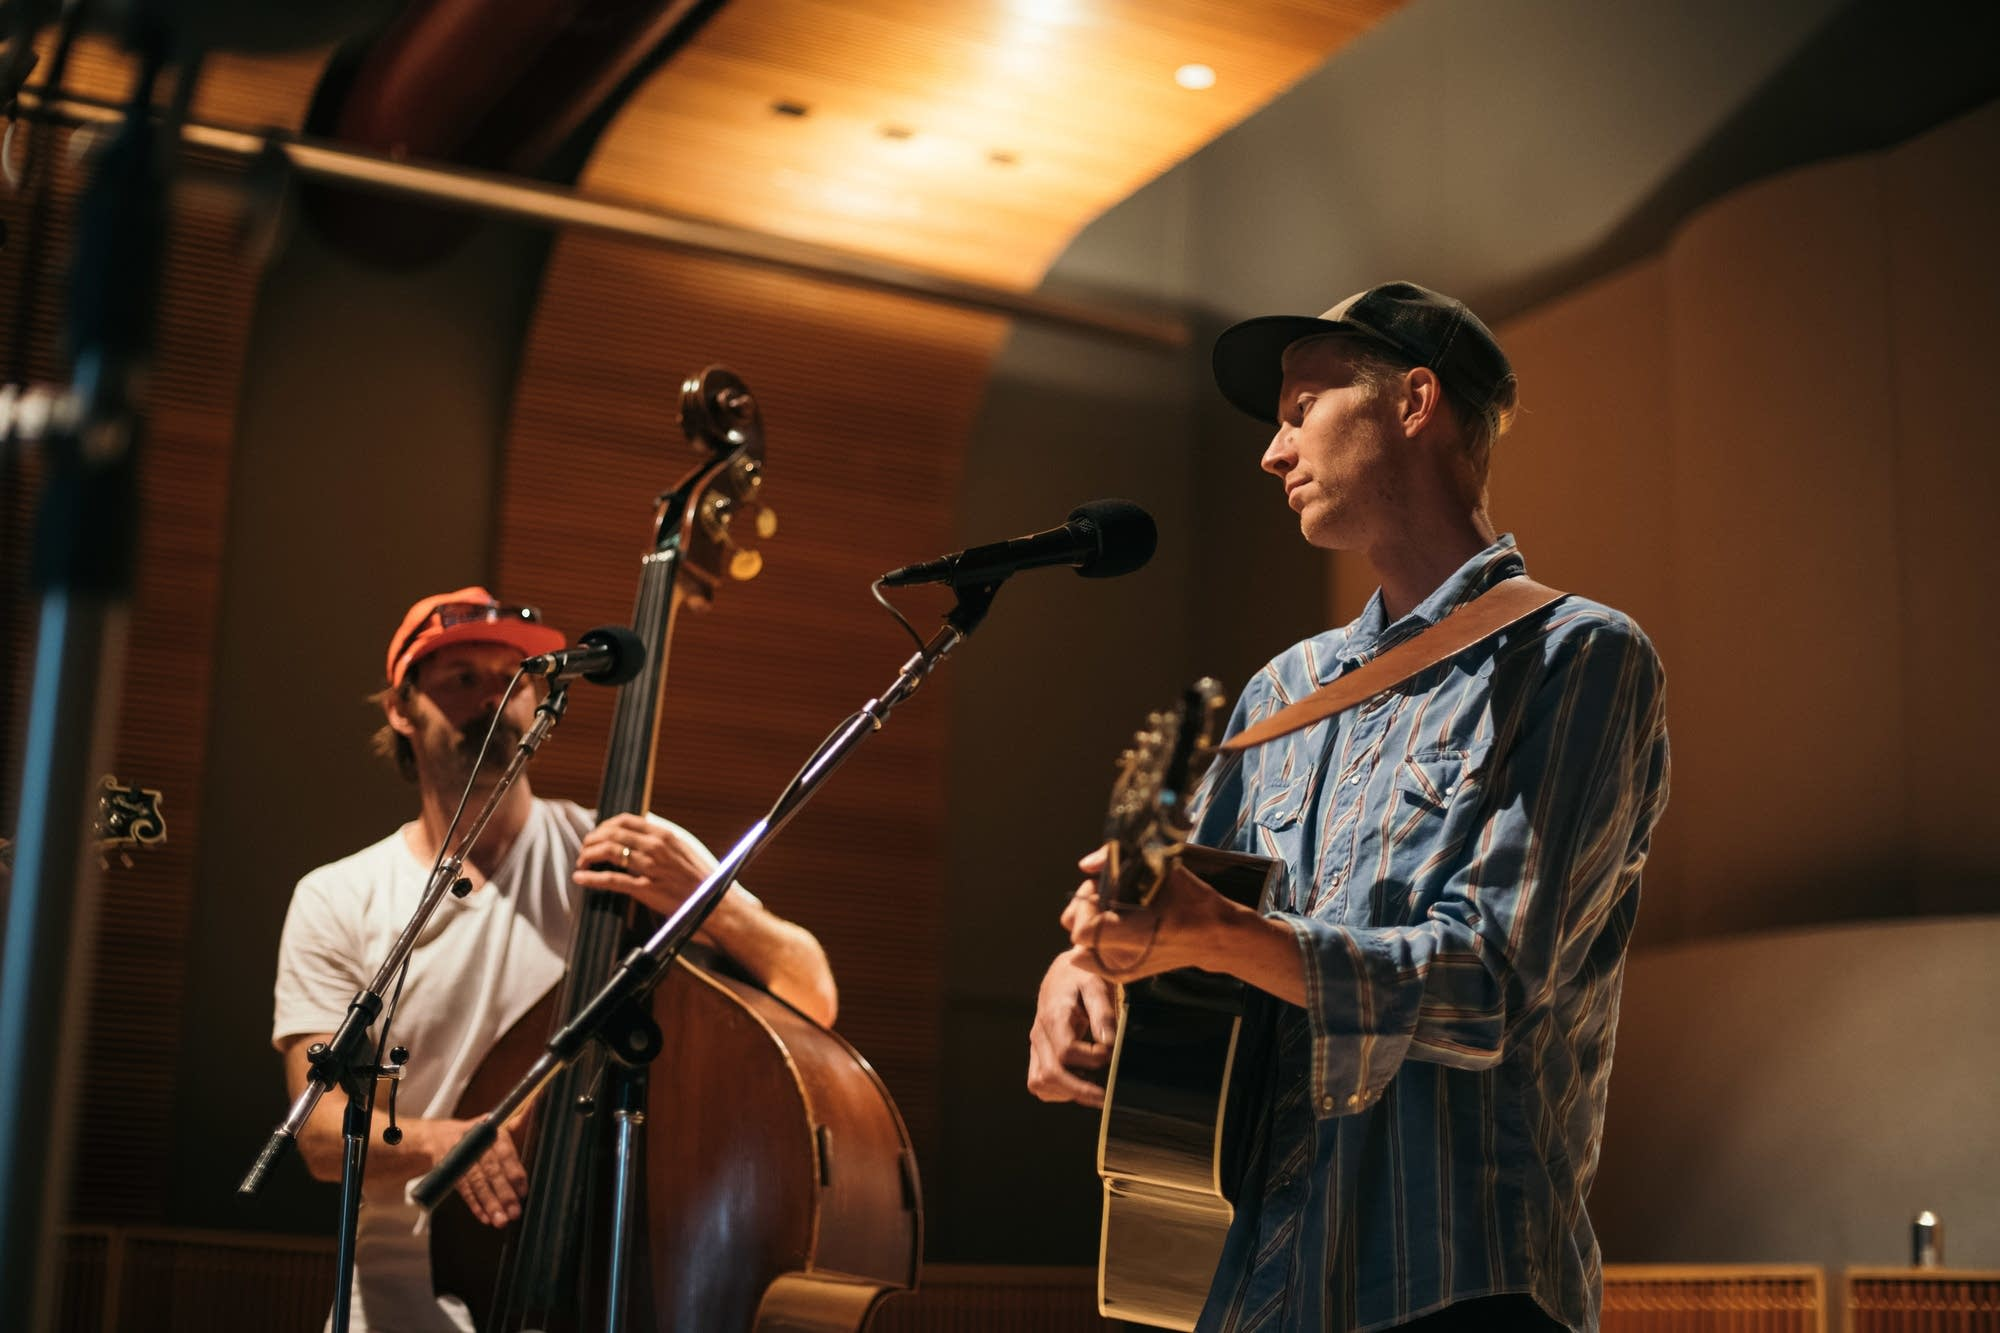 Trout Steak Revival perform in the Radio Heartland studio